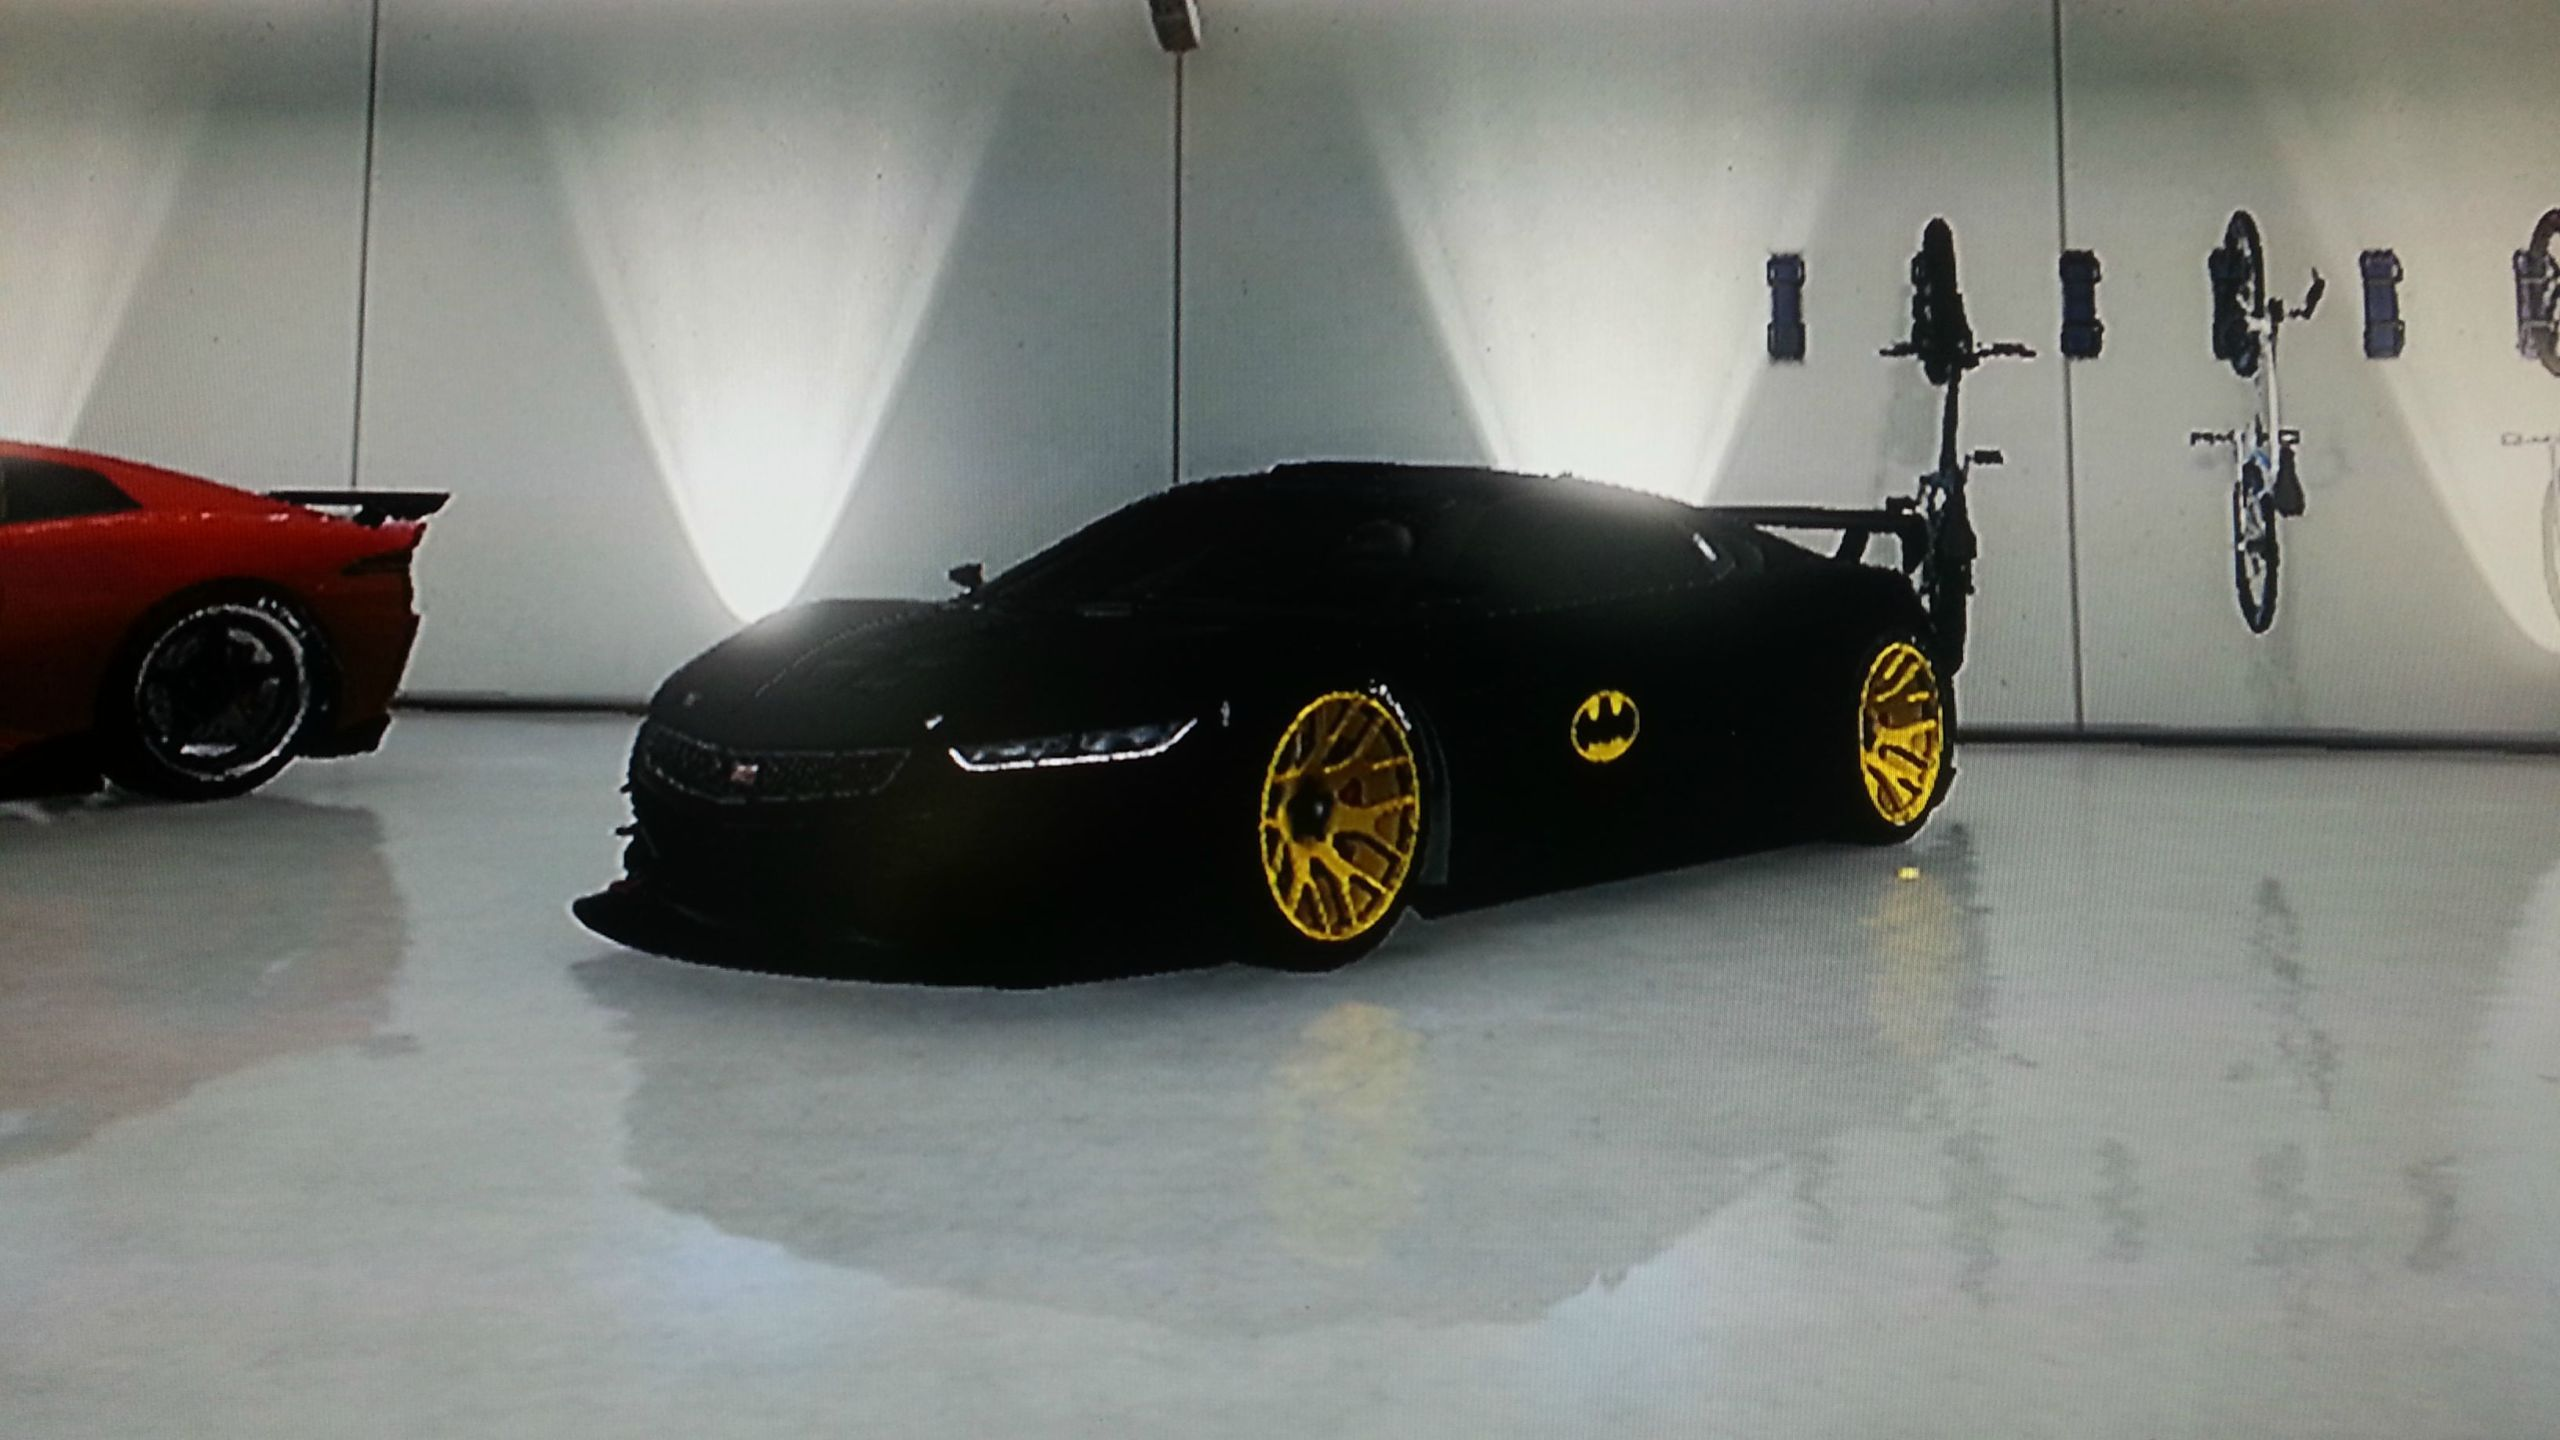 Wallpaper Sports Car Cheat Gta 5. Batmans Car Download Awesome Nice And  High Quality Hd Wallpapers From Backgroundwallpapershd